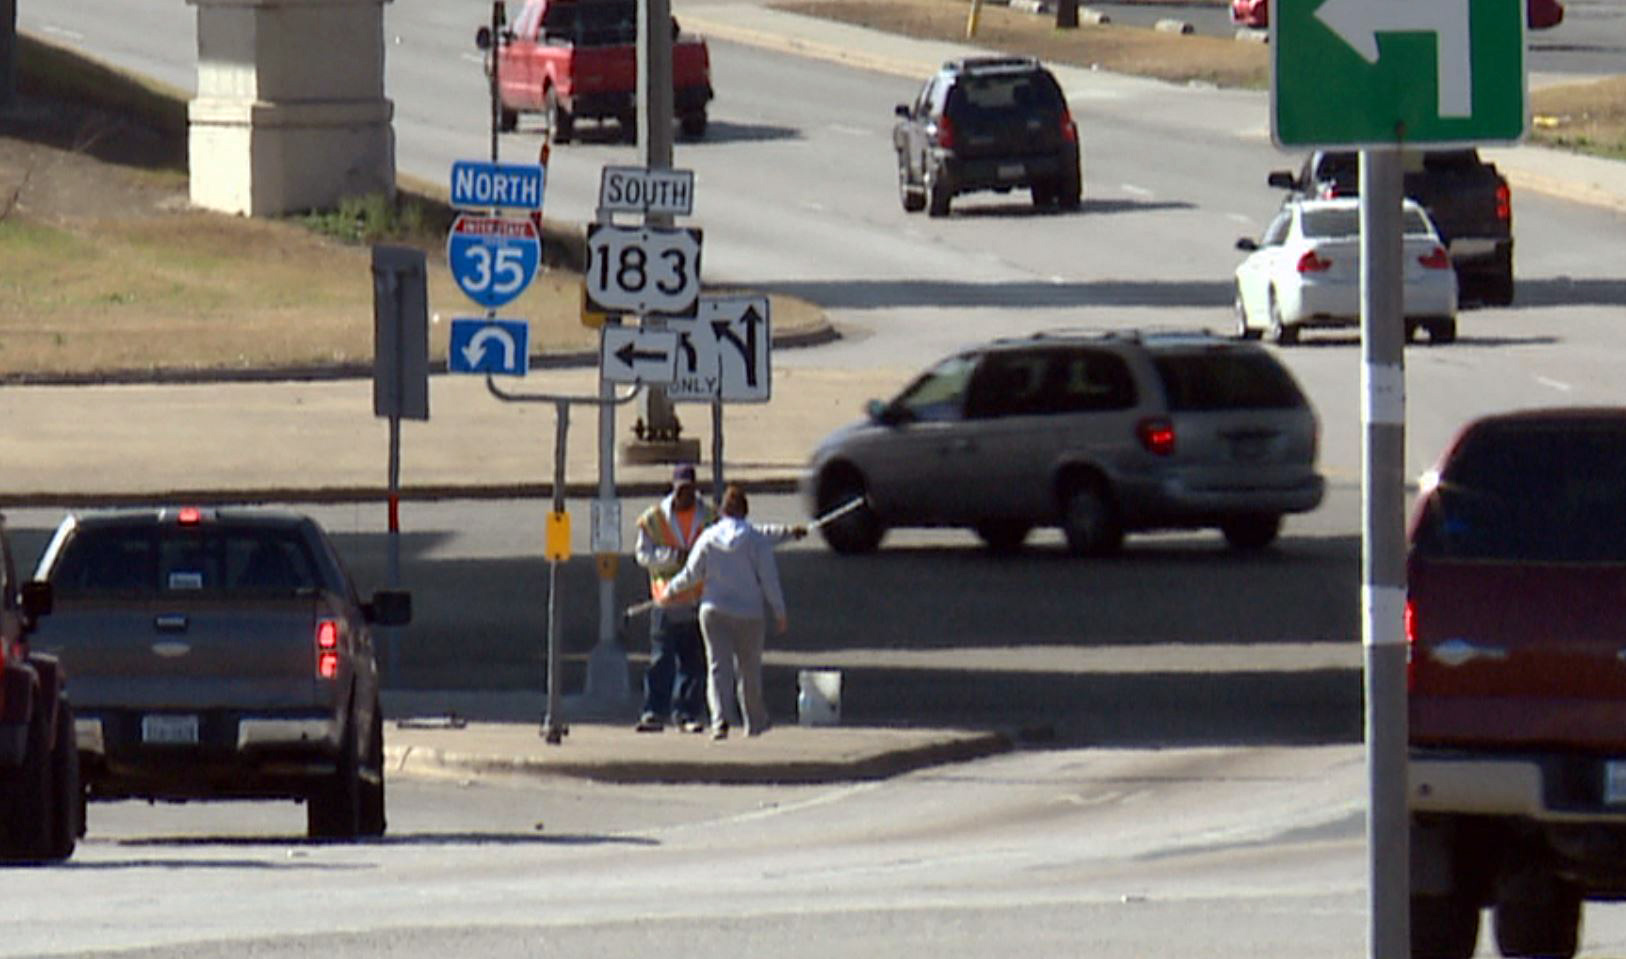 Southbound I-35 frontage to US 183 frontage. (KXAN Photo)